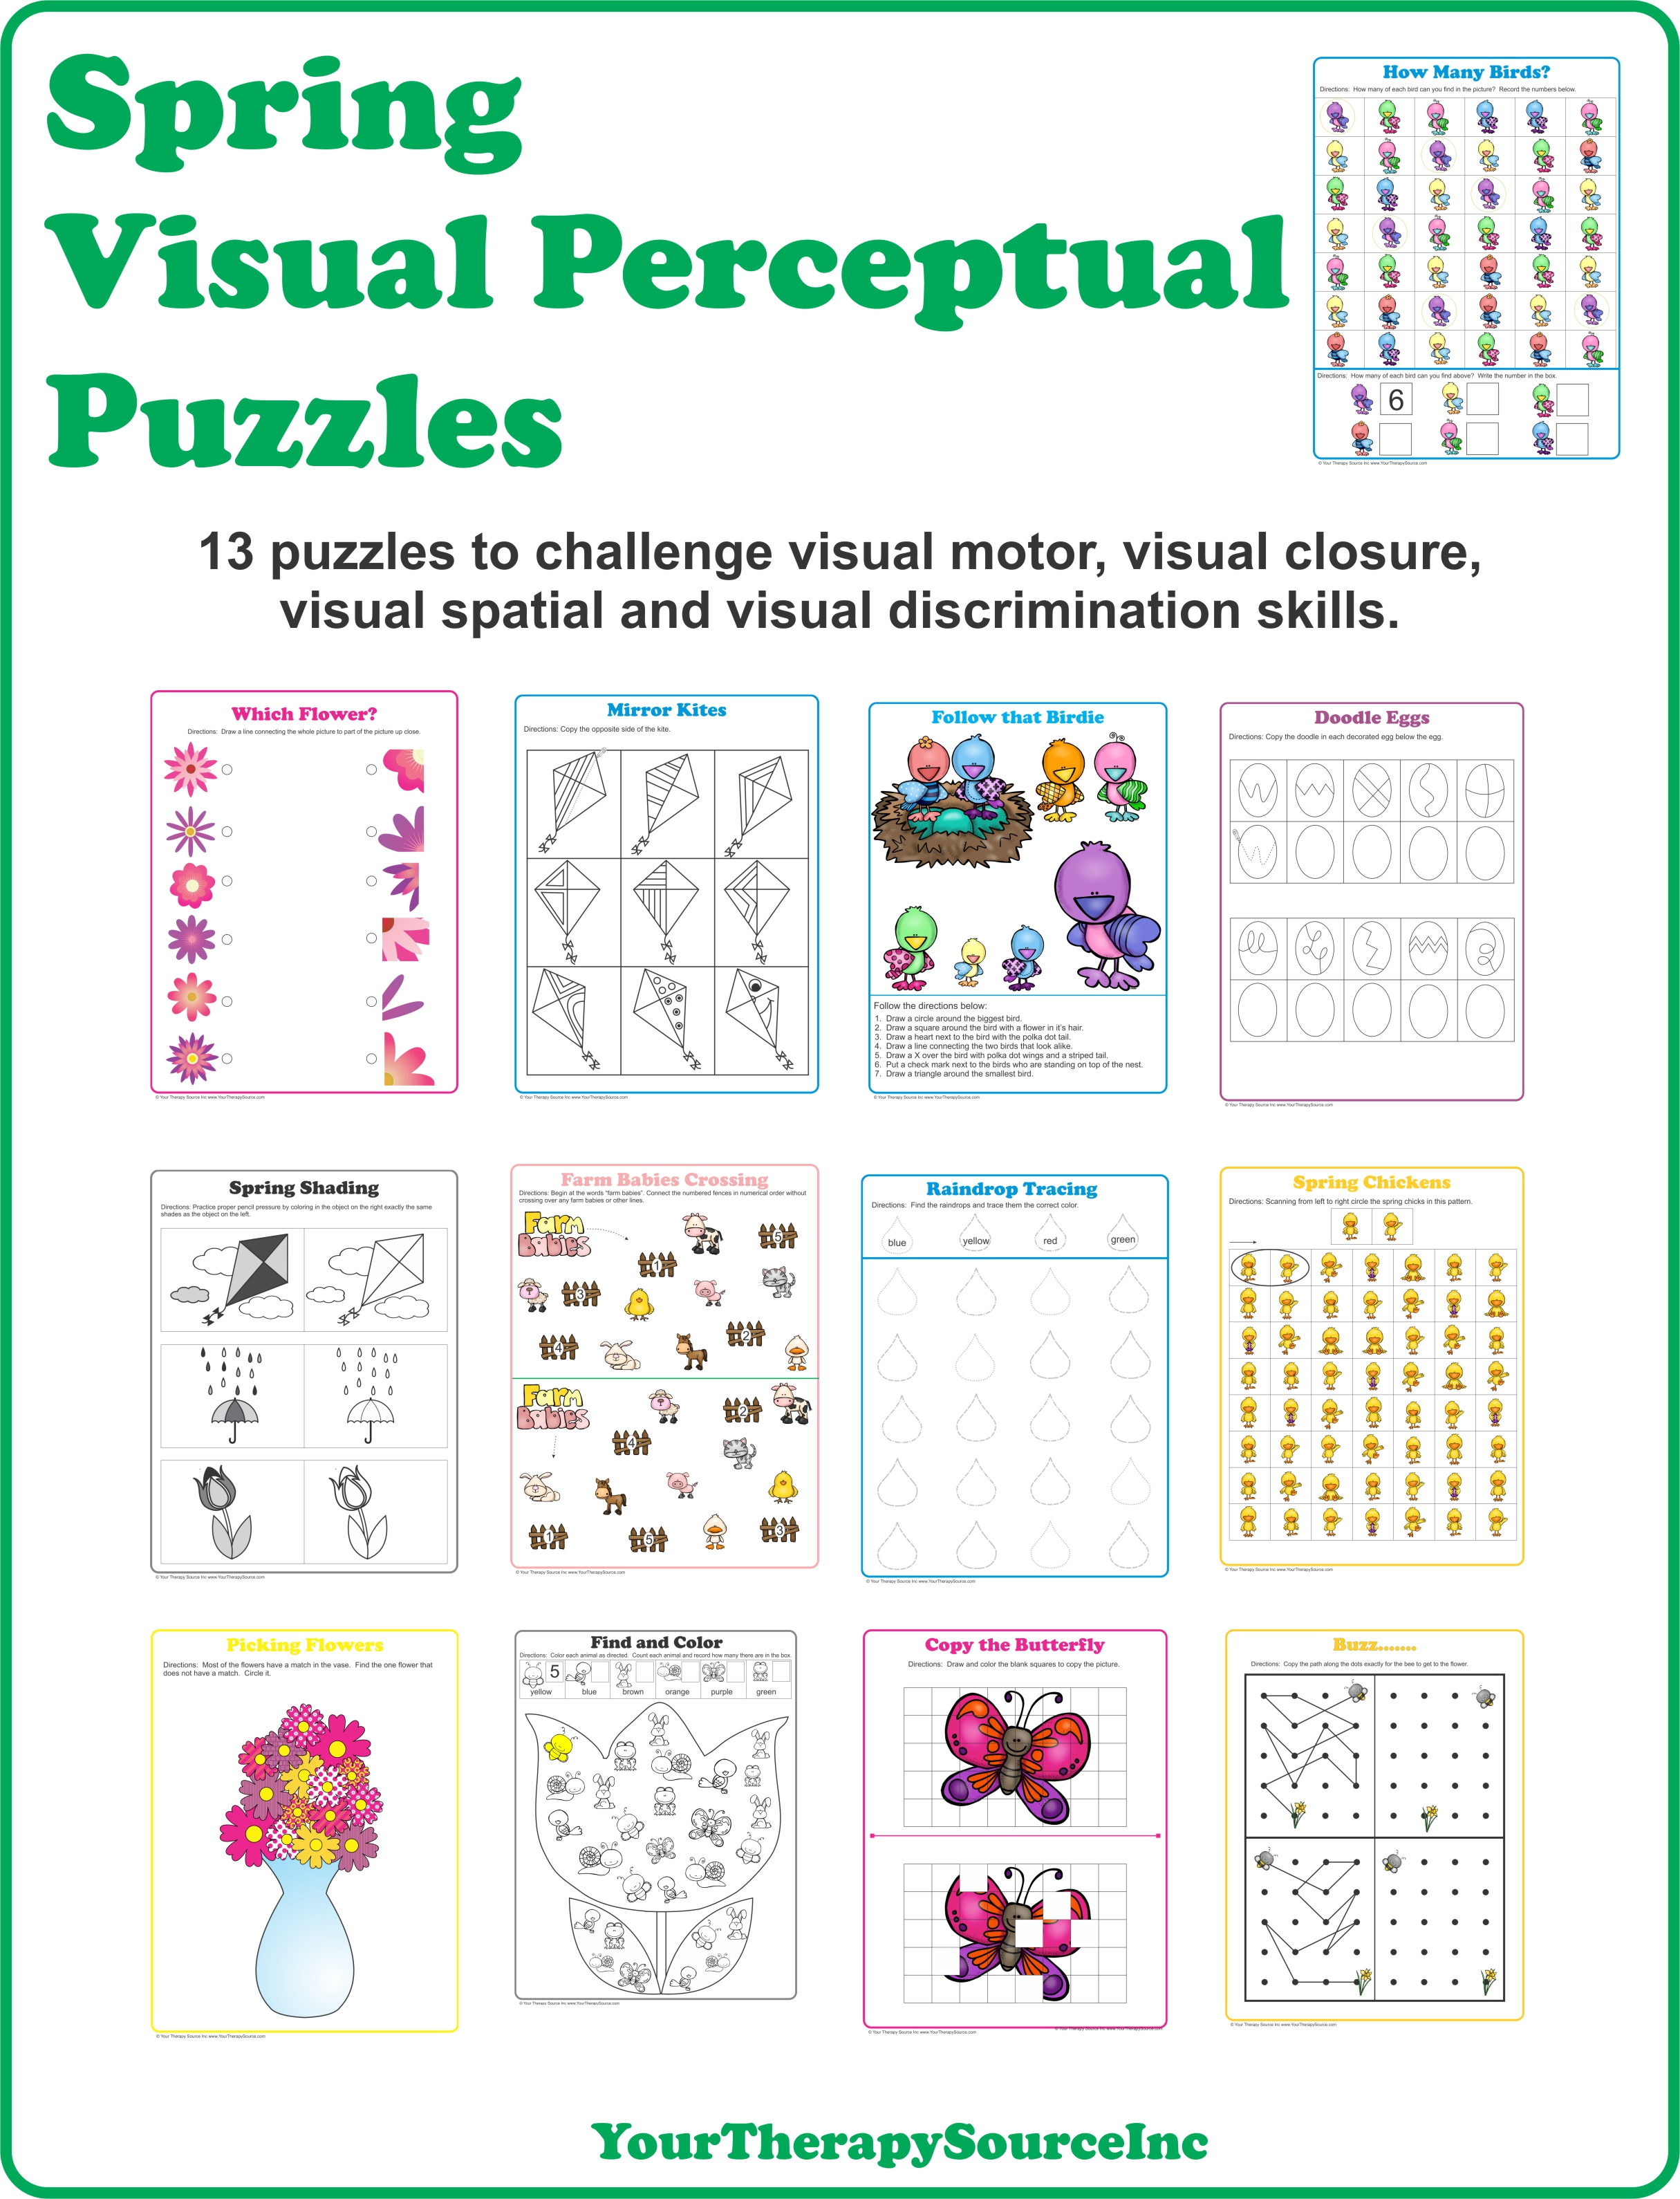 Spring Visual Perceptual Puzzles - Your Therapy Source - Free Printable Visual Puzzles